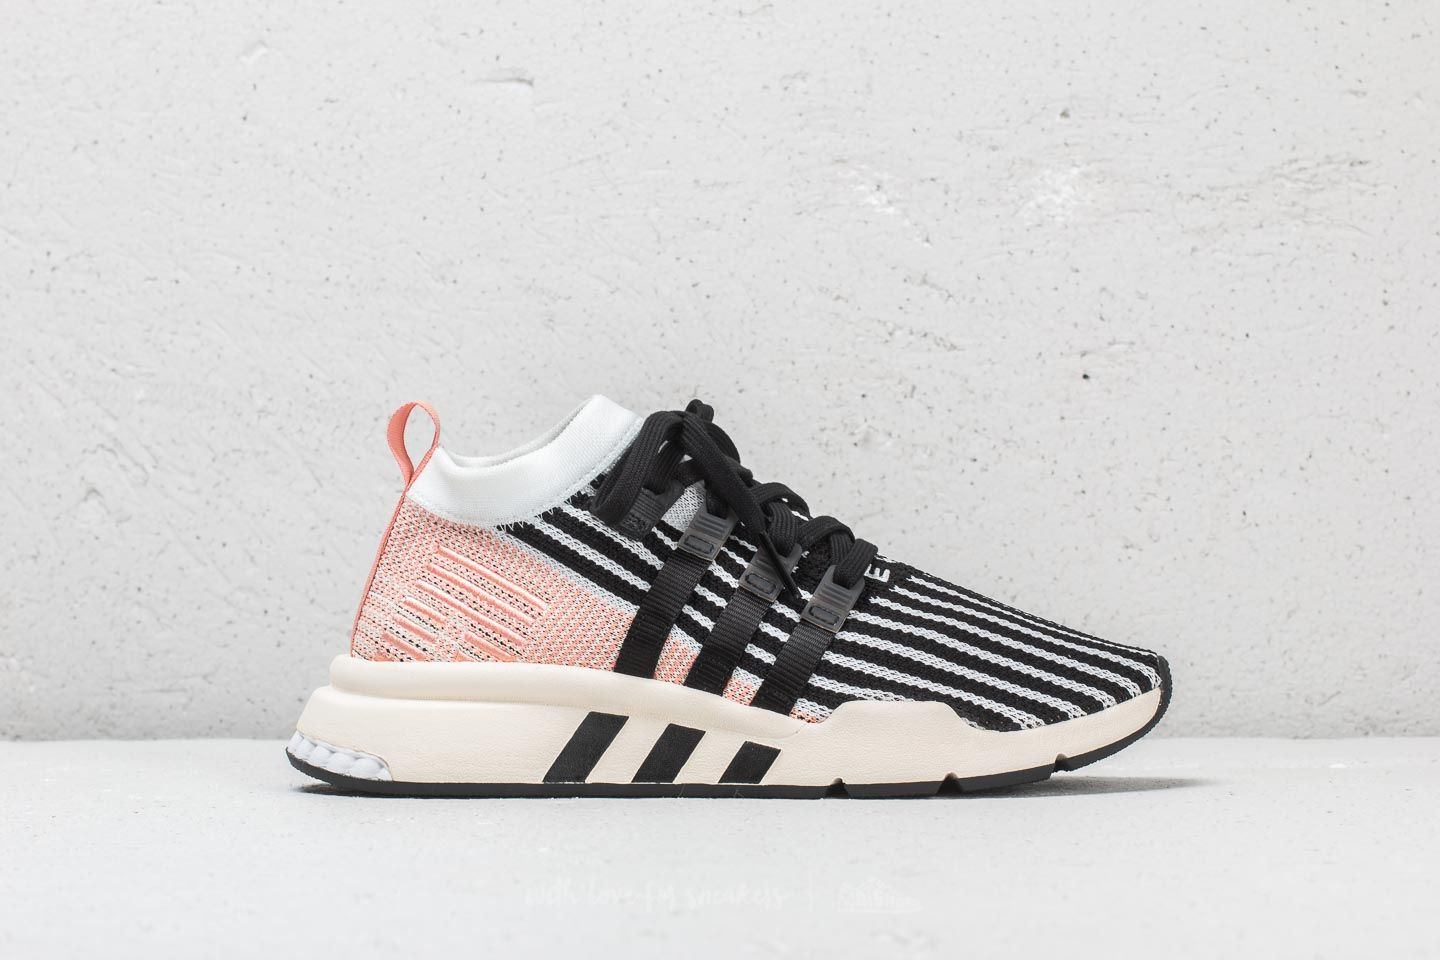 Adidas EQT Support Mid Adv Primeknit (Cloud WhiteTrace Pink